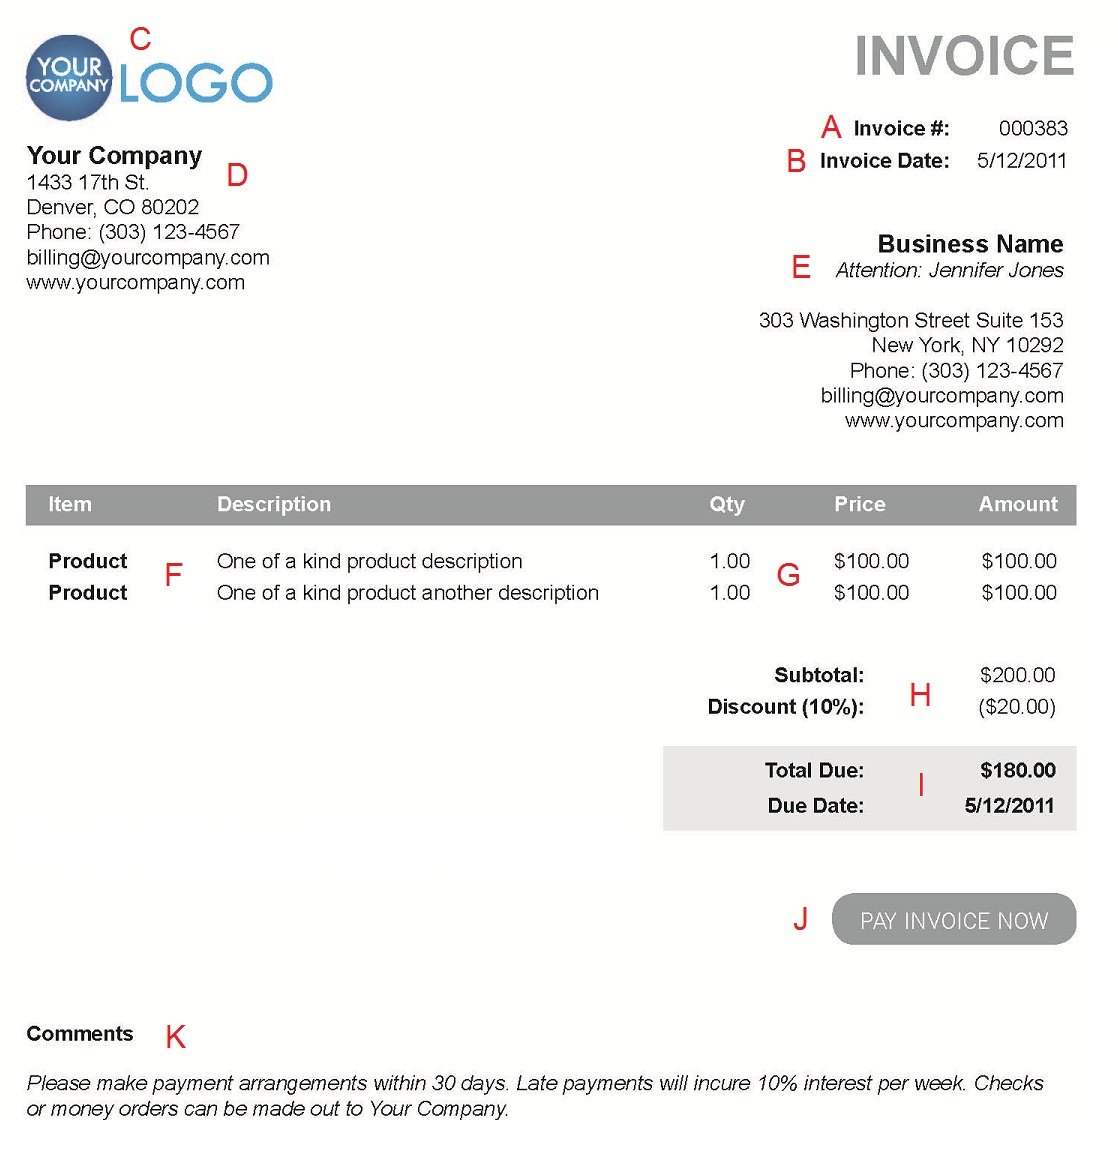 Theologygeekblogus  Marvellous The  Different Sections Of An Electronic Payment Invoice With Licious A  With Amazing Receipt Organizer App Also Walmart Warranty Lost Receipt In Addition Cvs Return Without Receipt And Jcpenney Return Policy Without Receipt As Well As Lowes Lost Receipt Additionally Best Buy Receipt Lookup From Paysimplecom With Theologygeekblogus  Licious The  Different Sections Of An Electronic Payment Invoice With Amazing A  And Marvellous Receipt Organizer App Also Walmart Warranty Lost Receipt In Addition Cvs Return Without Receipt From Paysimplecom